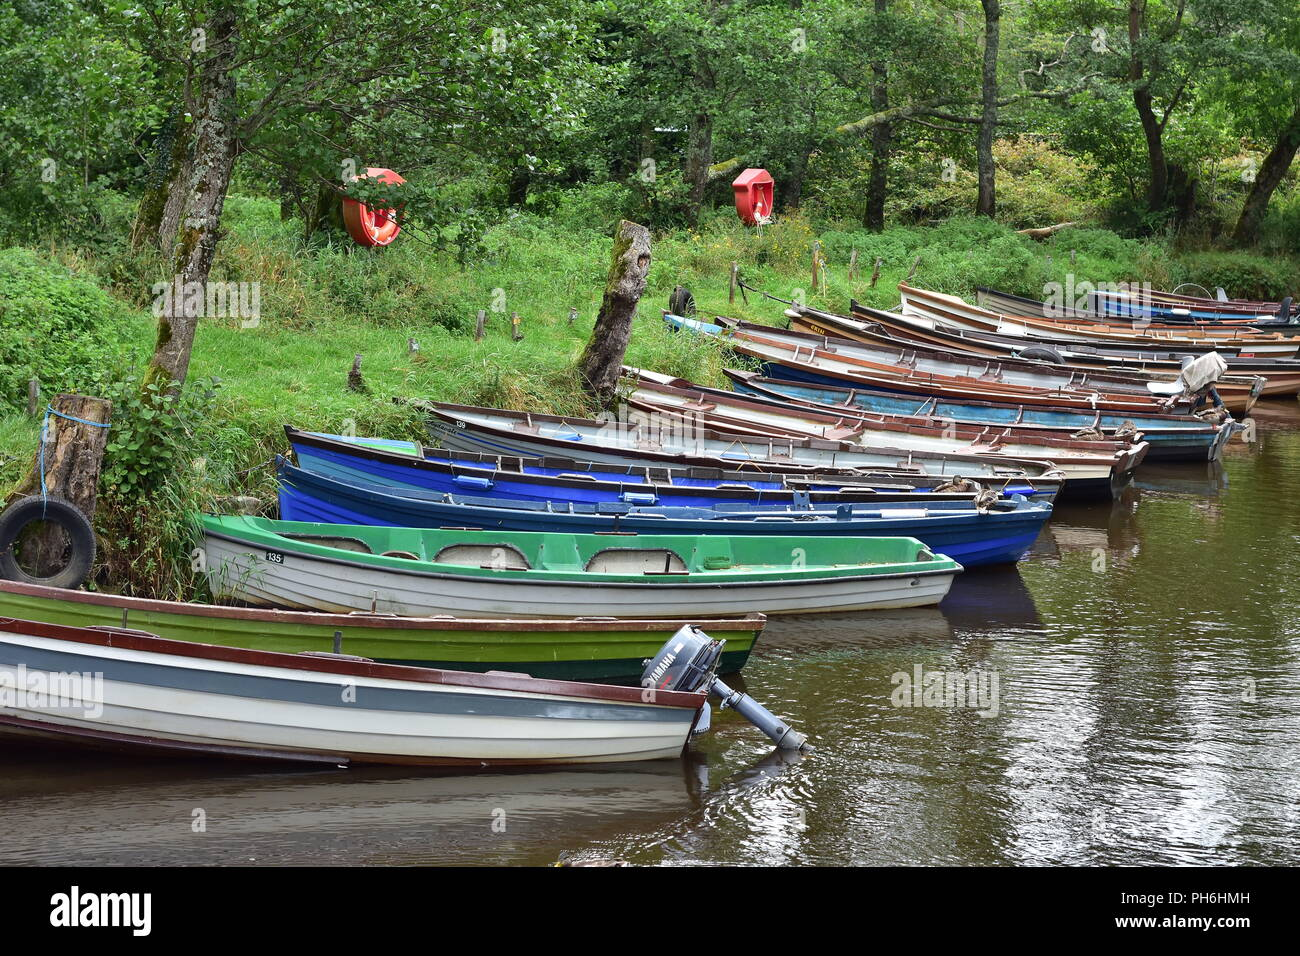 Clinker boats on calm river tied to bank covered with greenery. Life saver rings on stands are clearly visible due to color contrast. - Stock Image